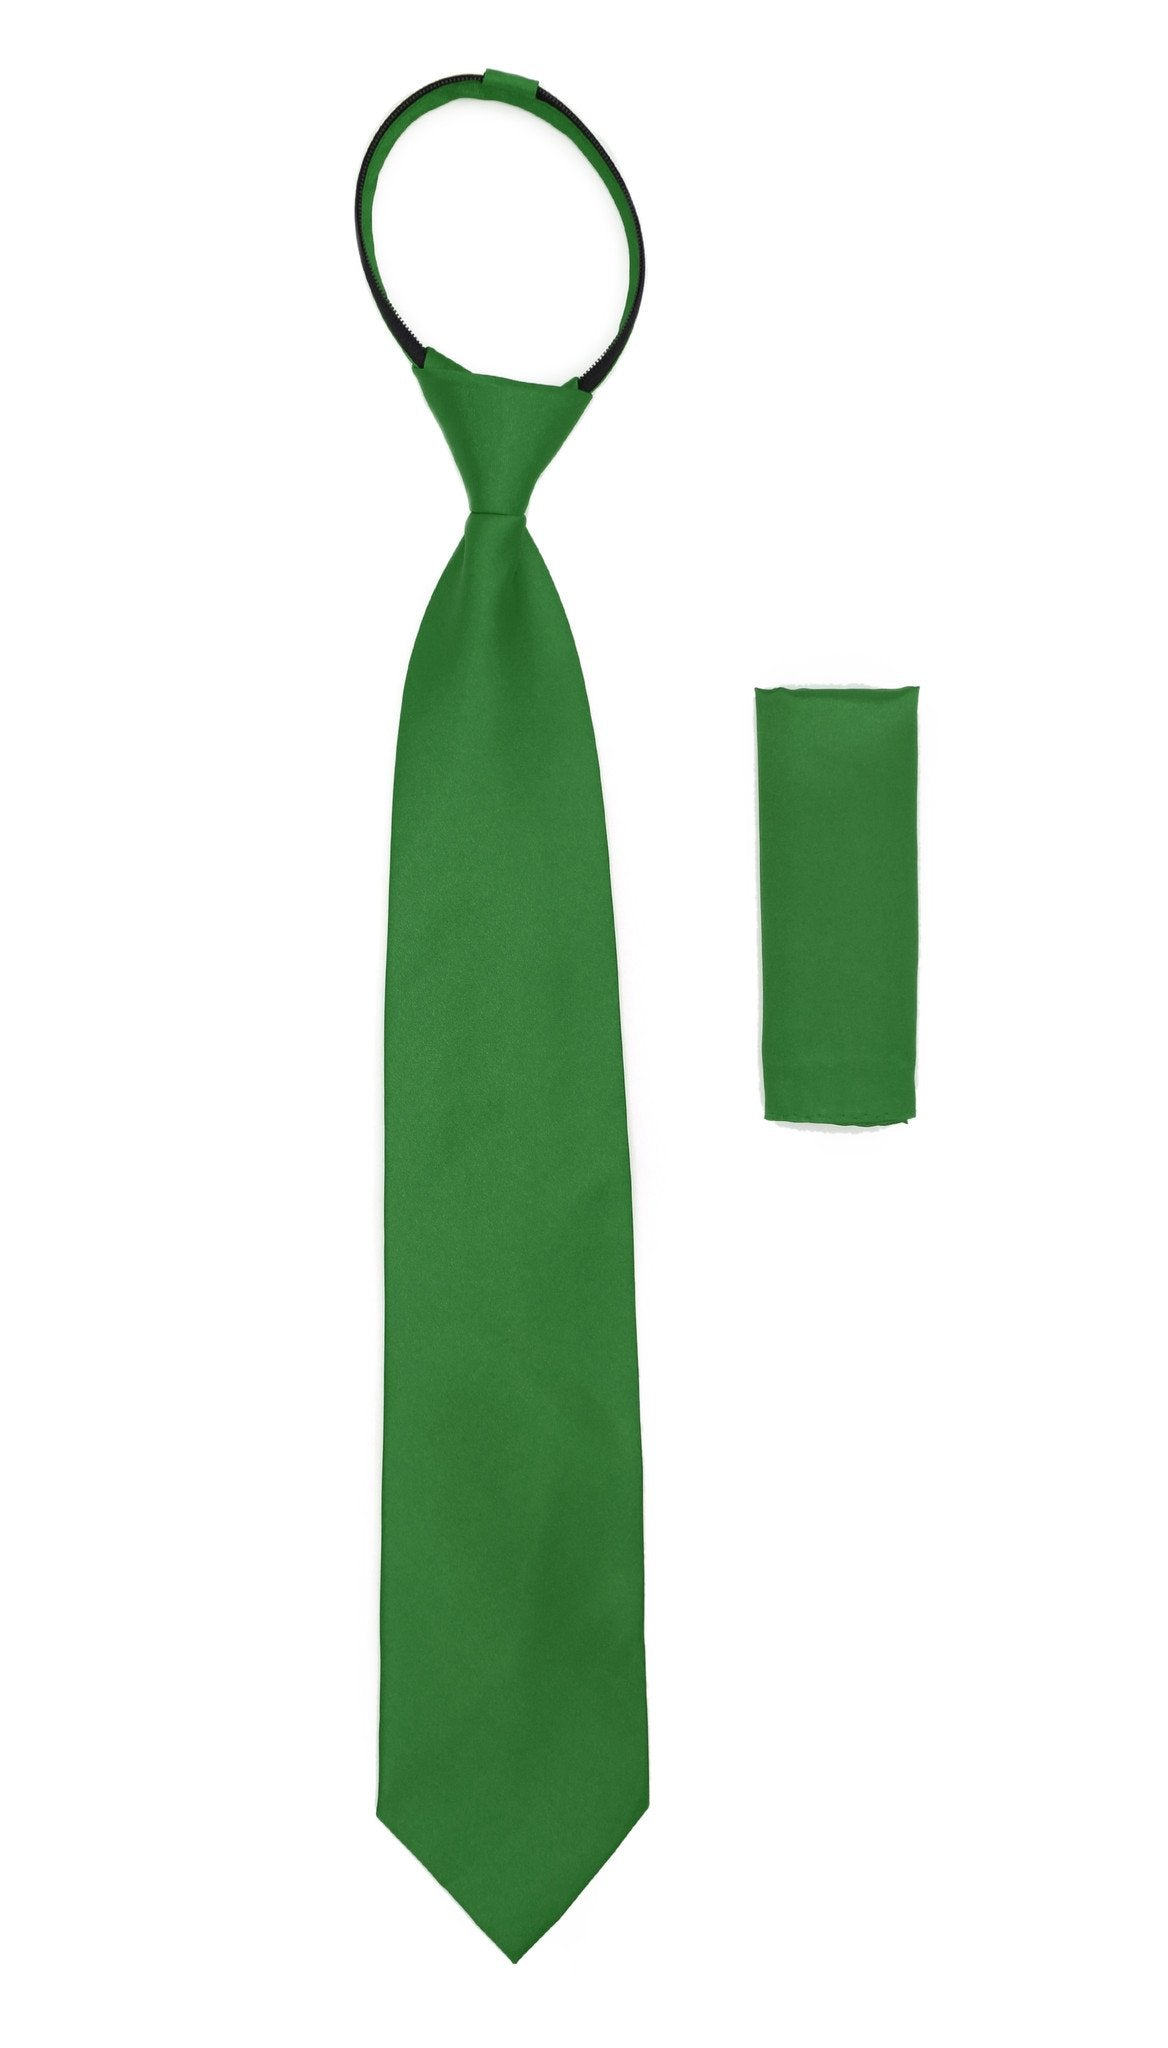 Satine Green Zipper Tie with Hankie Set - Giorgio's Menswear